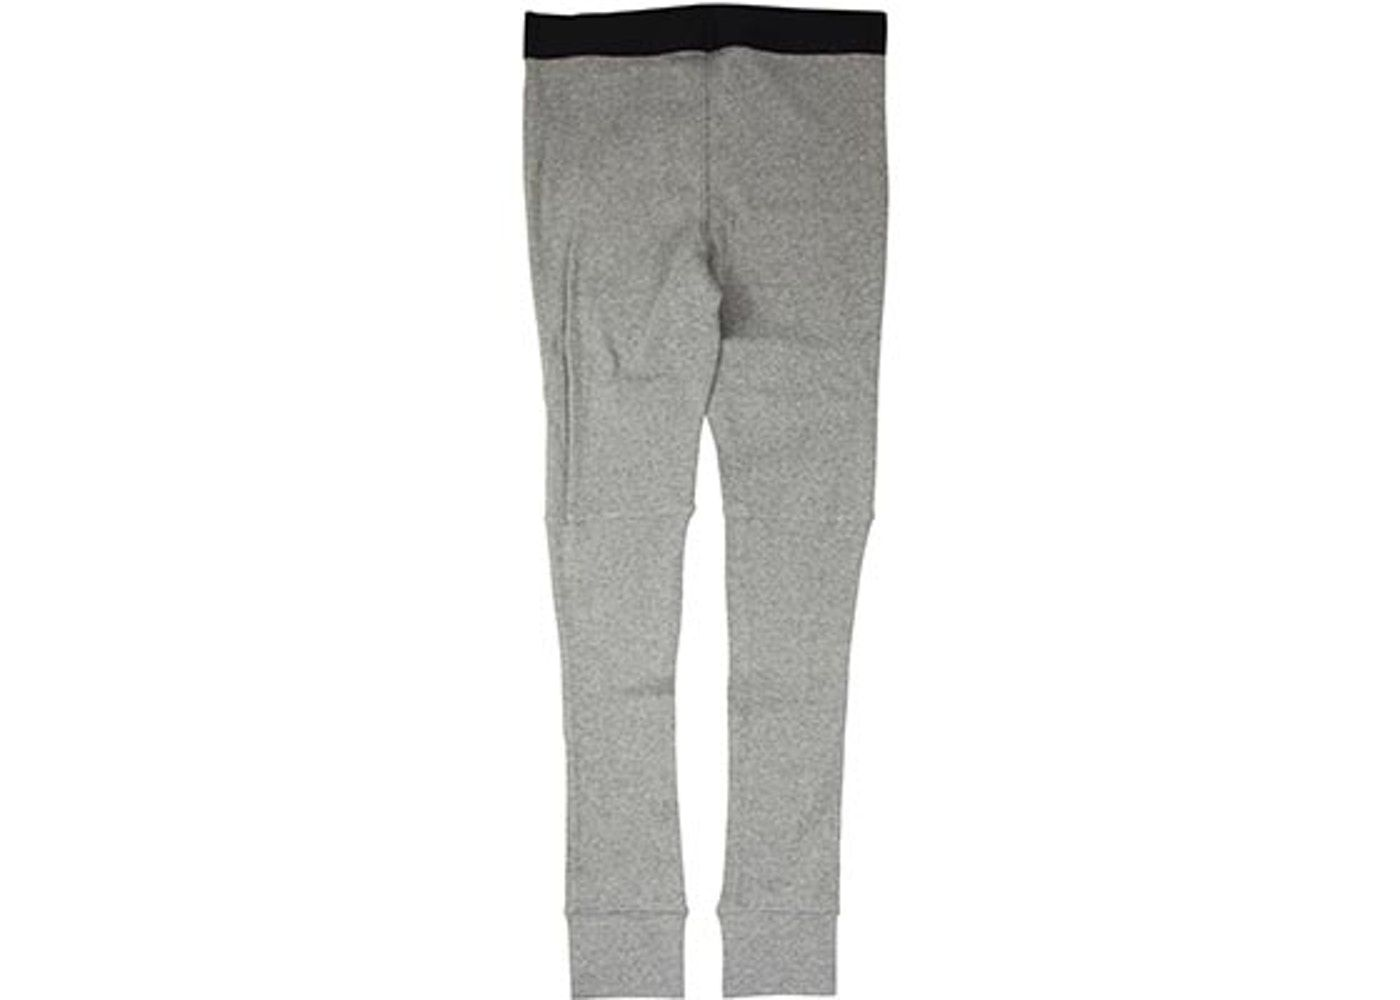 06d8cfa9 Check out the Fear of God FOG Essentials Thermal Waffle Knit Leggings Grey  available on StockX